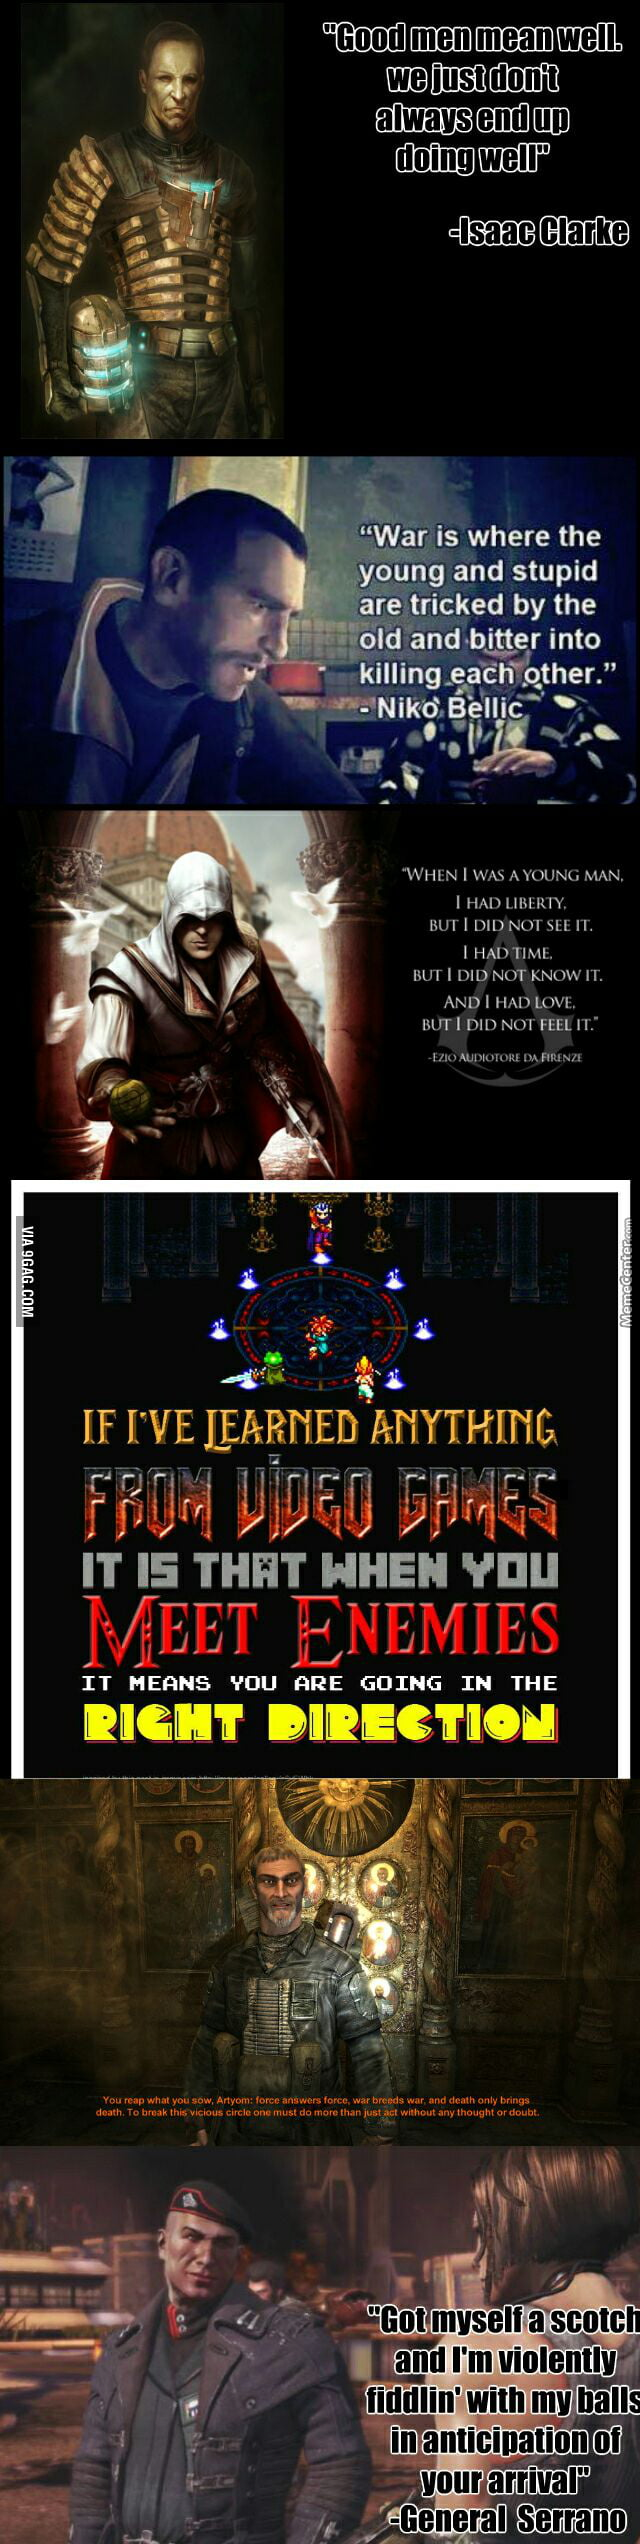 Some deep video game quotes... - 9GAG